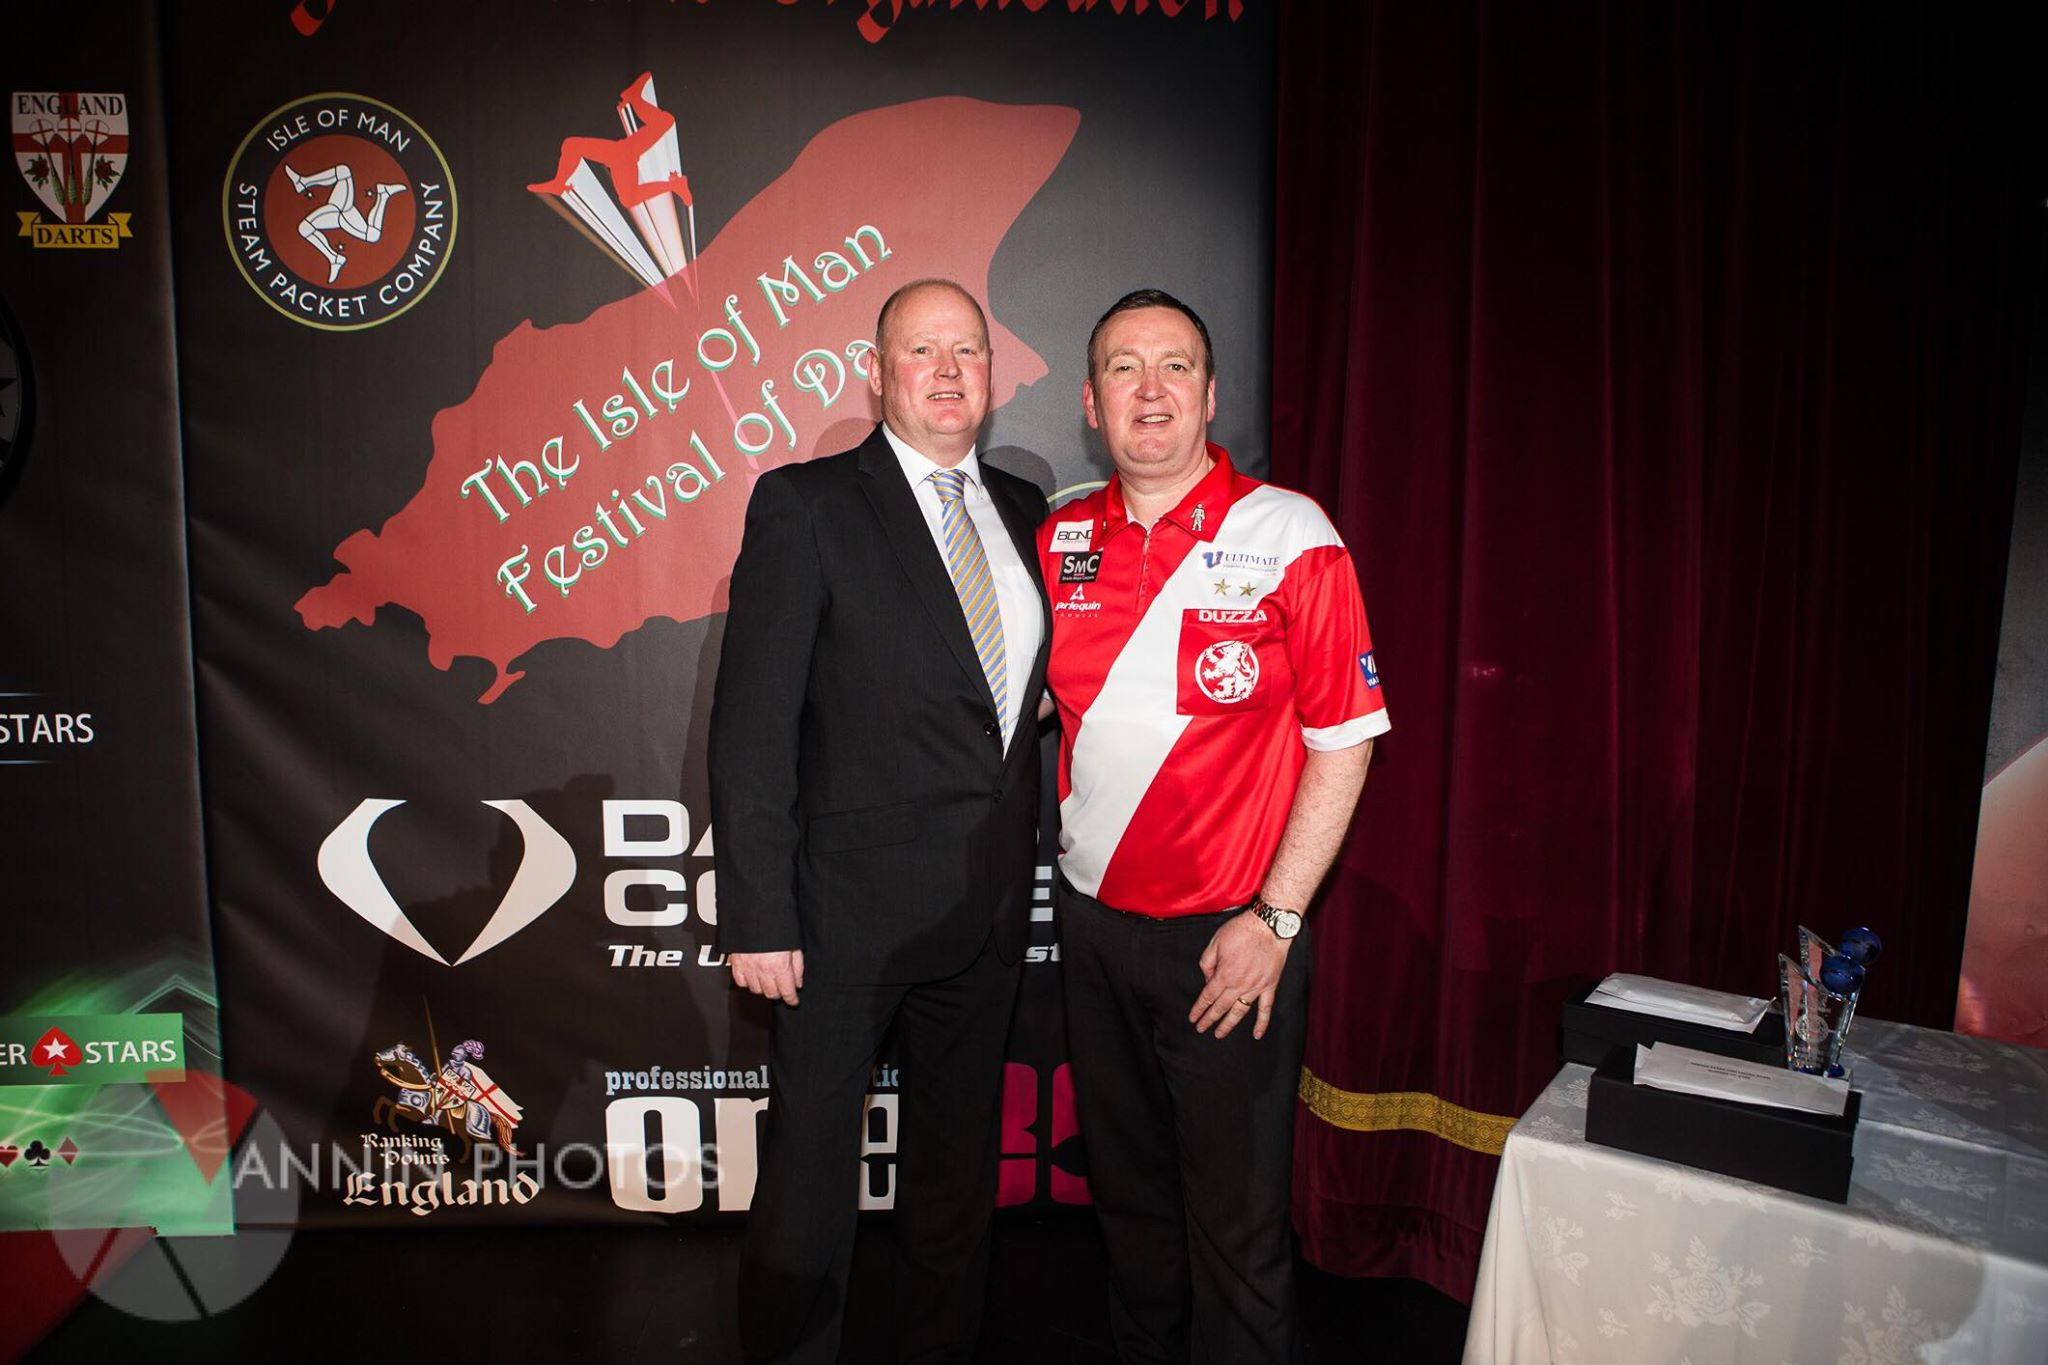 Isle of Man Darts 2018